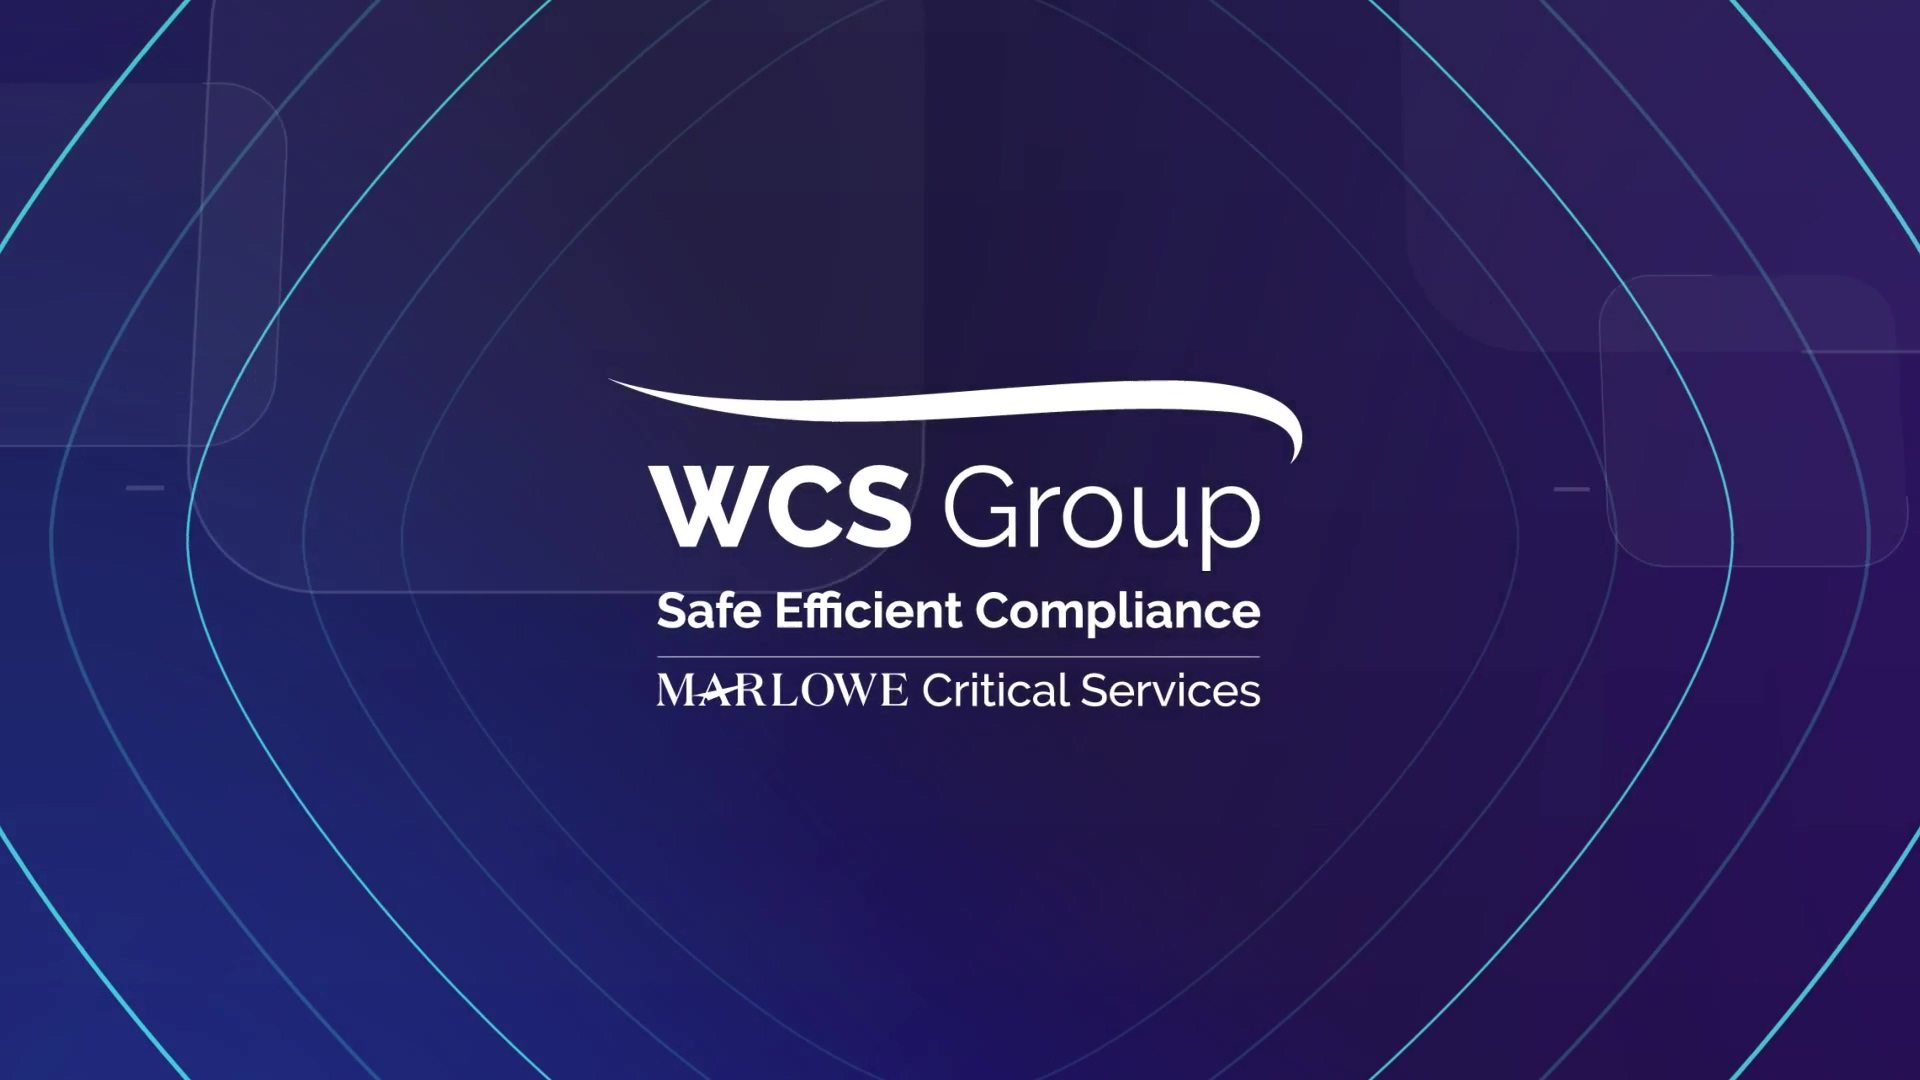 WCS Corporate Presentation - External - v1.1